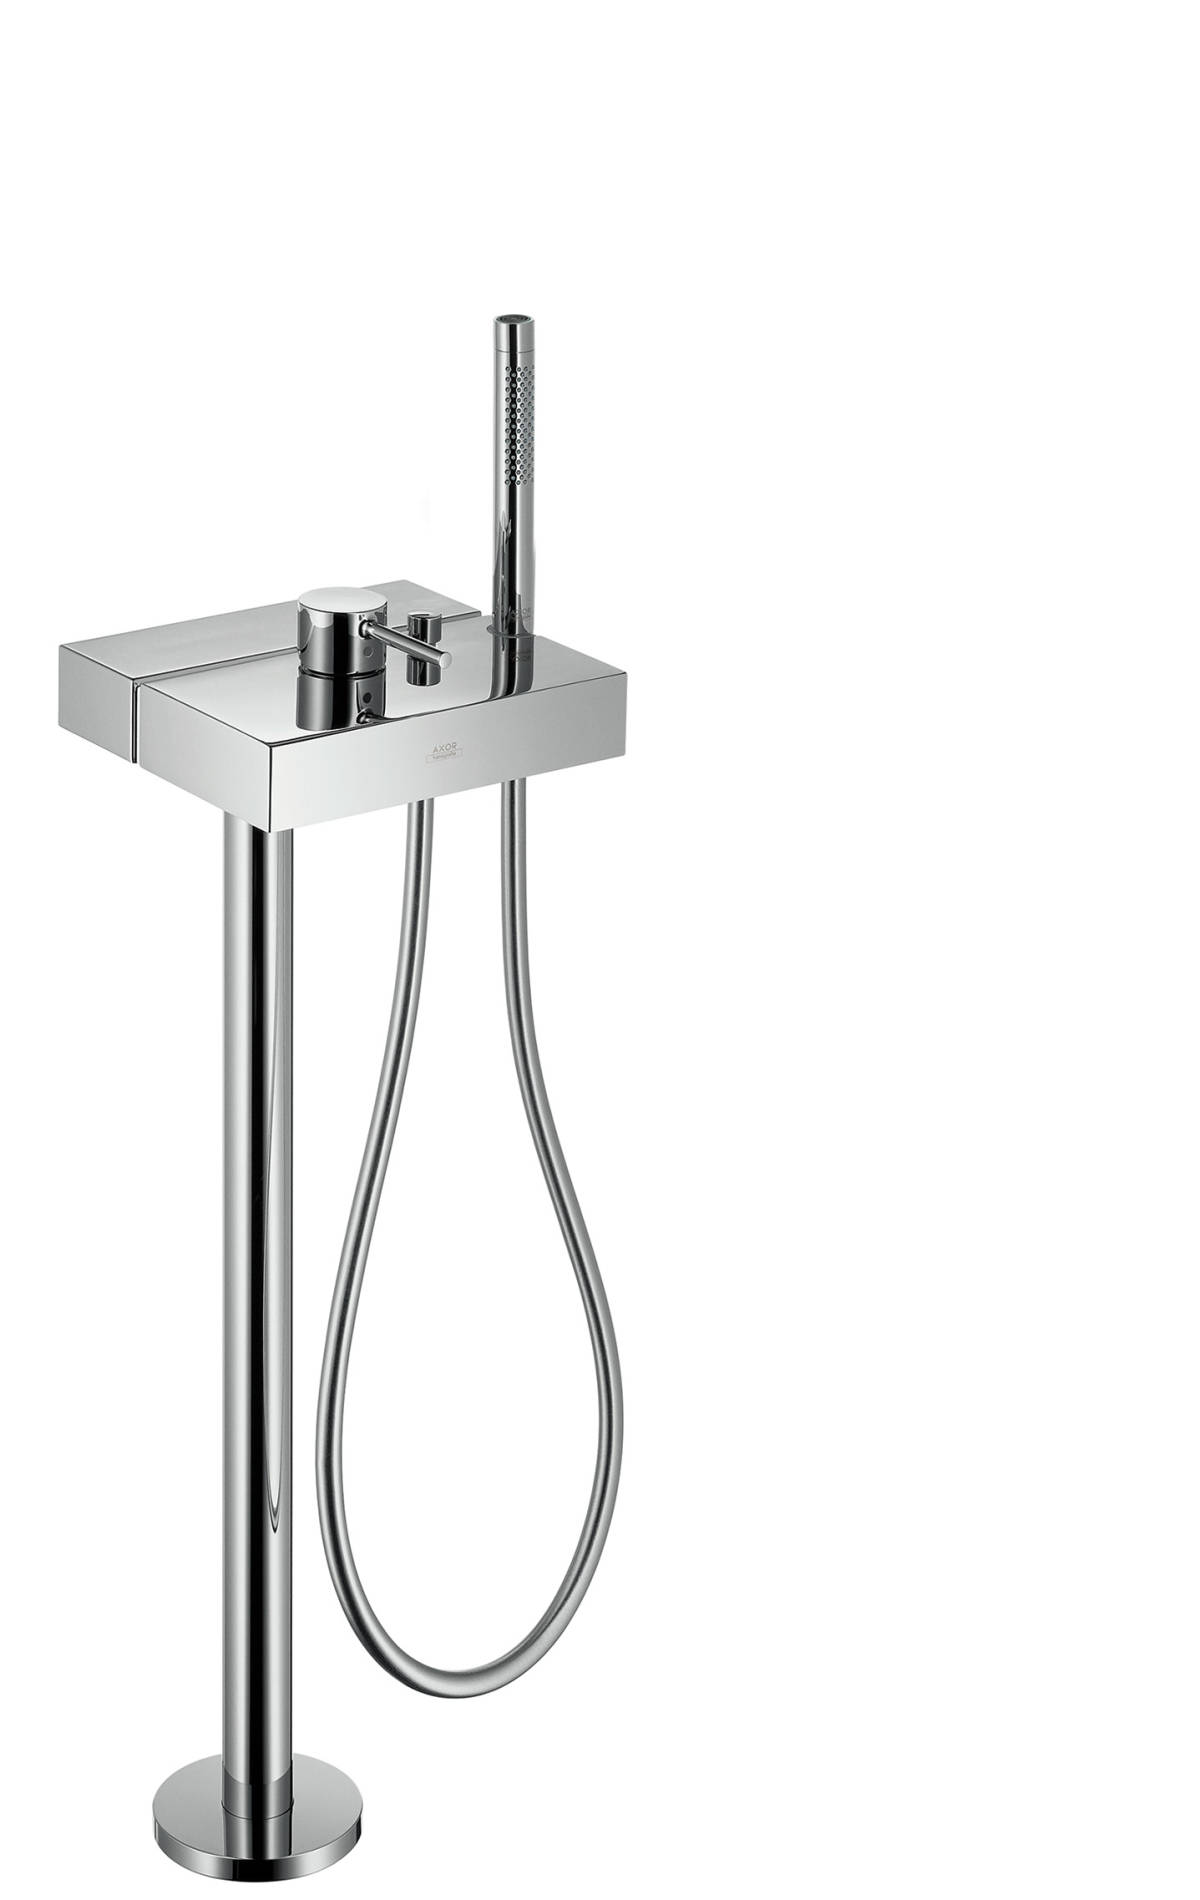 Single lever bath mixer floor-standing, Chrome, 10406000